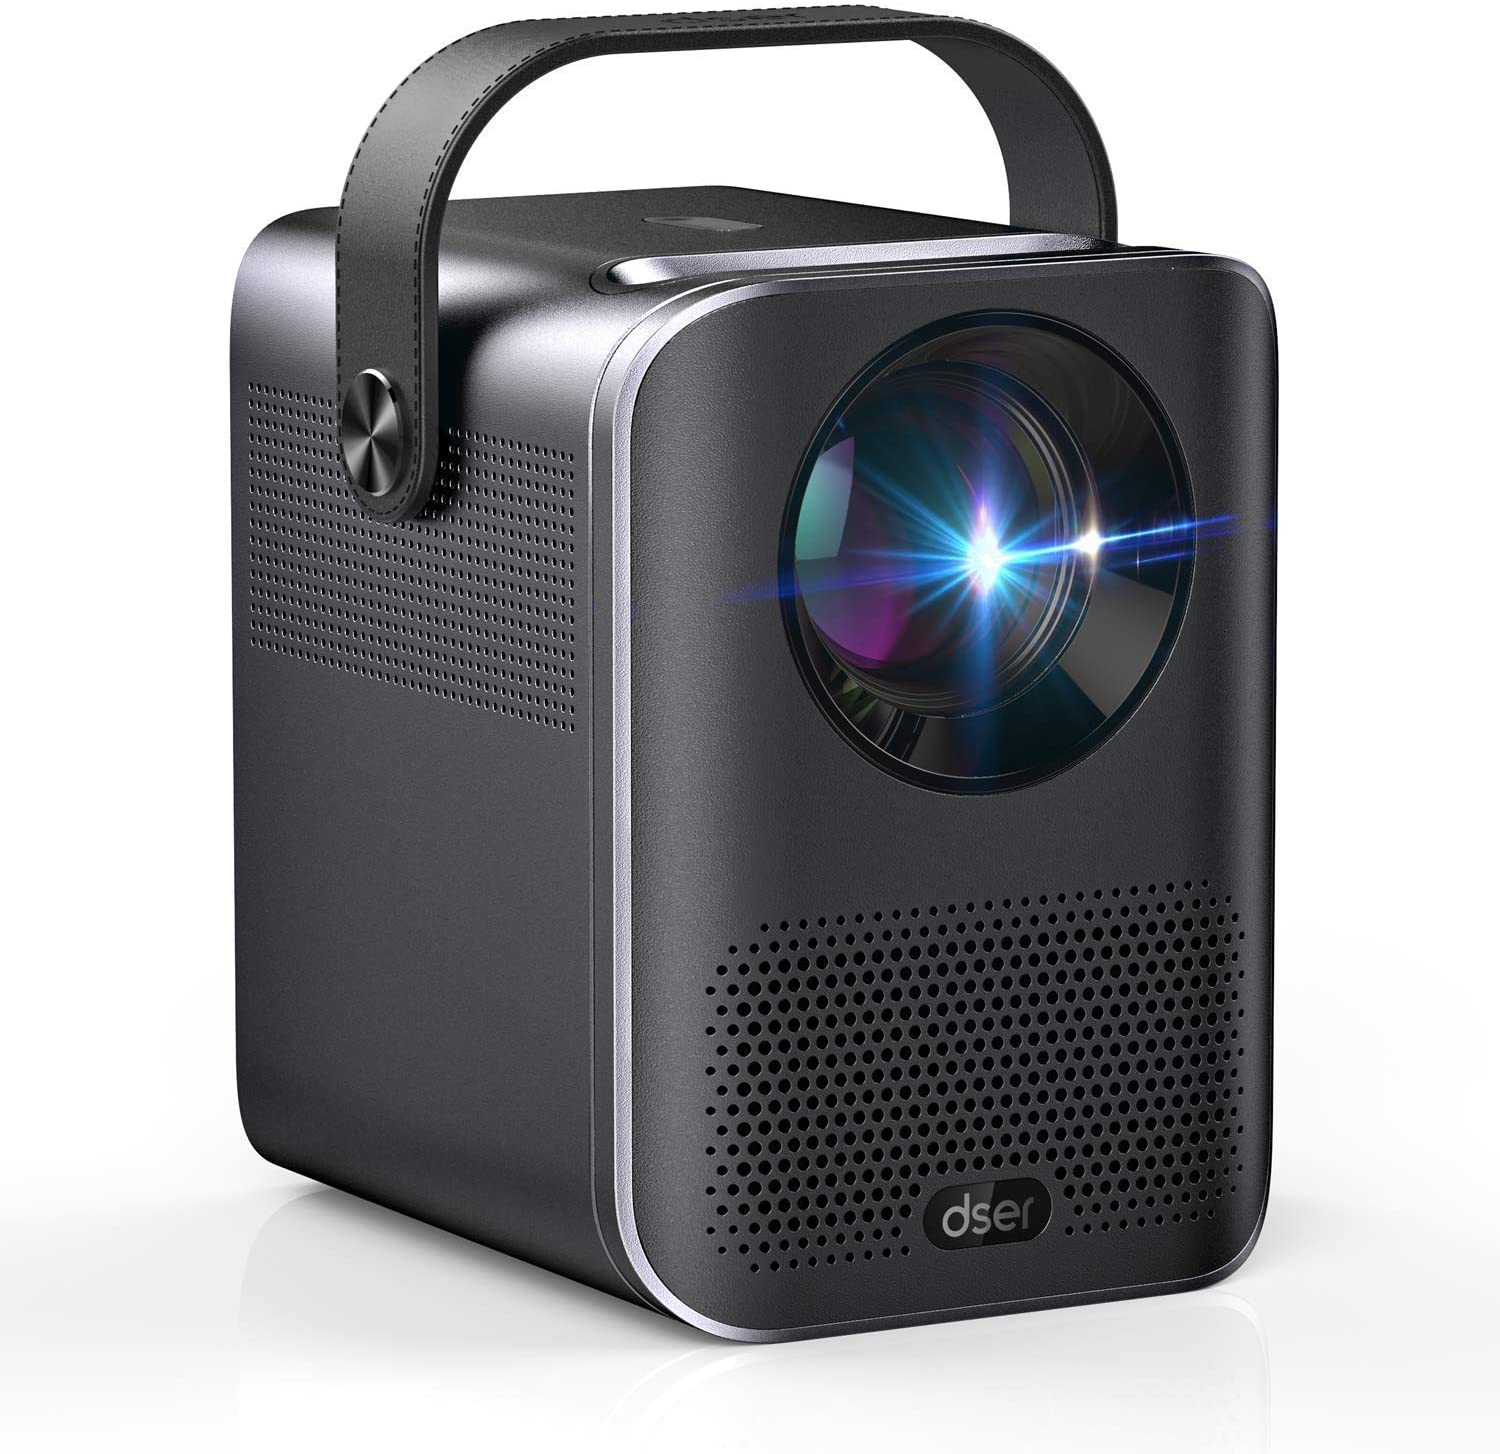 """Video Projector, 1080P and 160"""" Display Supported, Dser Portable Mini Projector with 60,000Hrs LED, 150ANSI 4000 Lumen Home Theater Movie Projector Compatible with Fire TV, Laptops, PC, PS4, HDMI, USB: Electronics"""